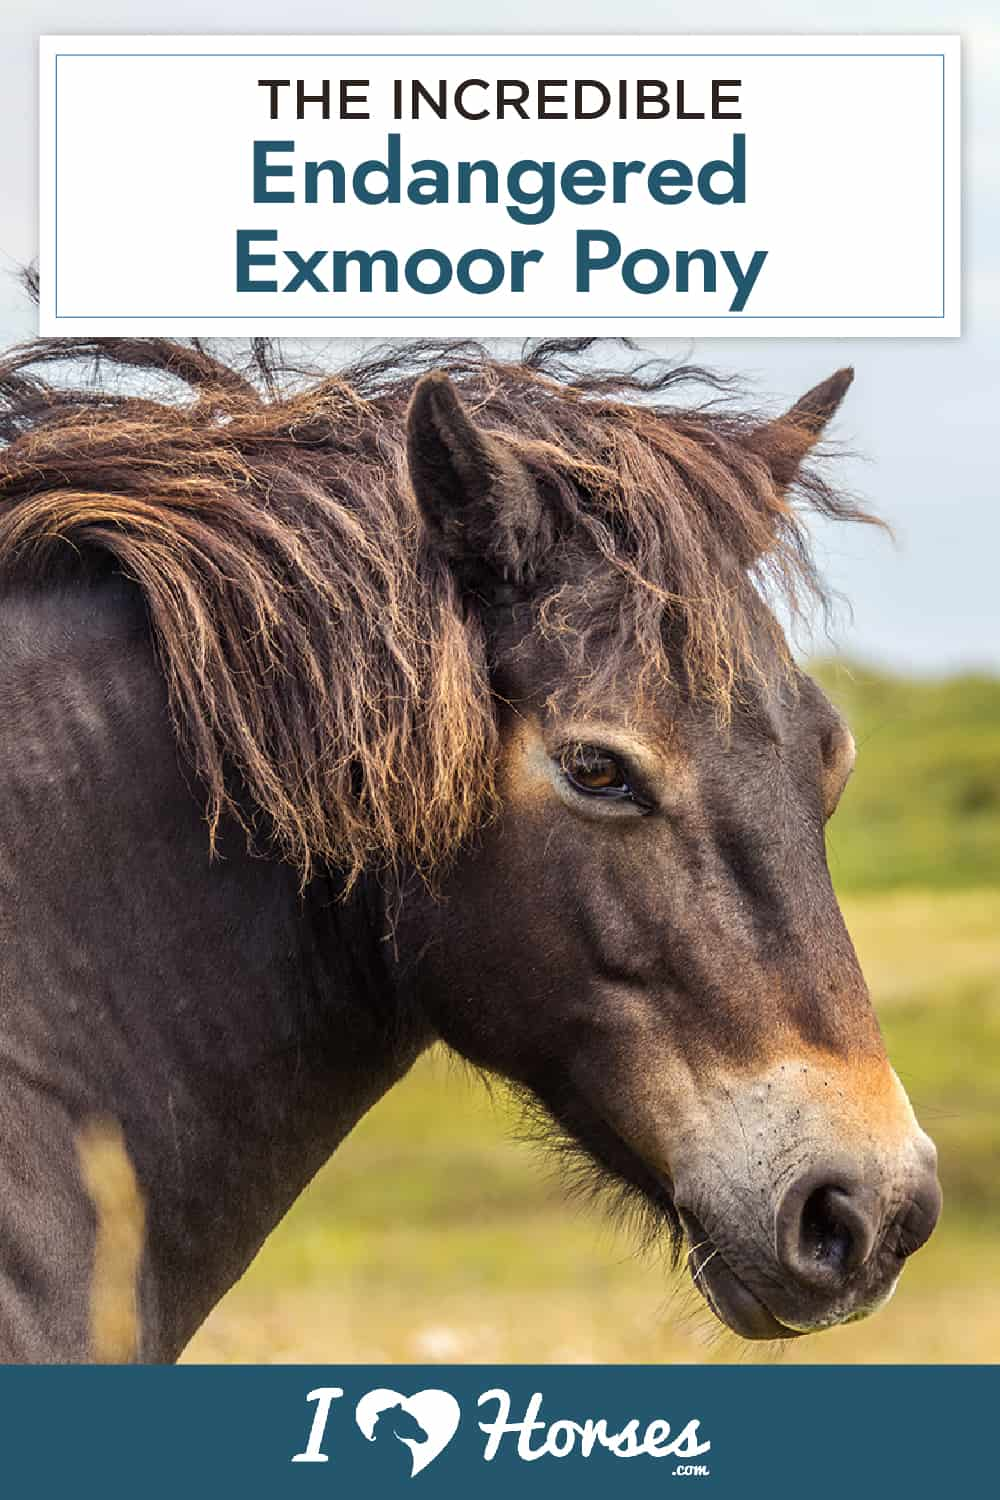 All About the Endangered Exmoor Pony